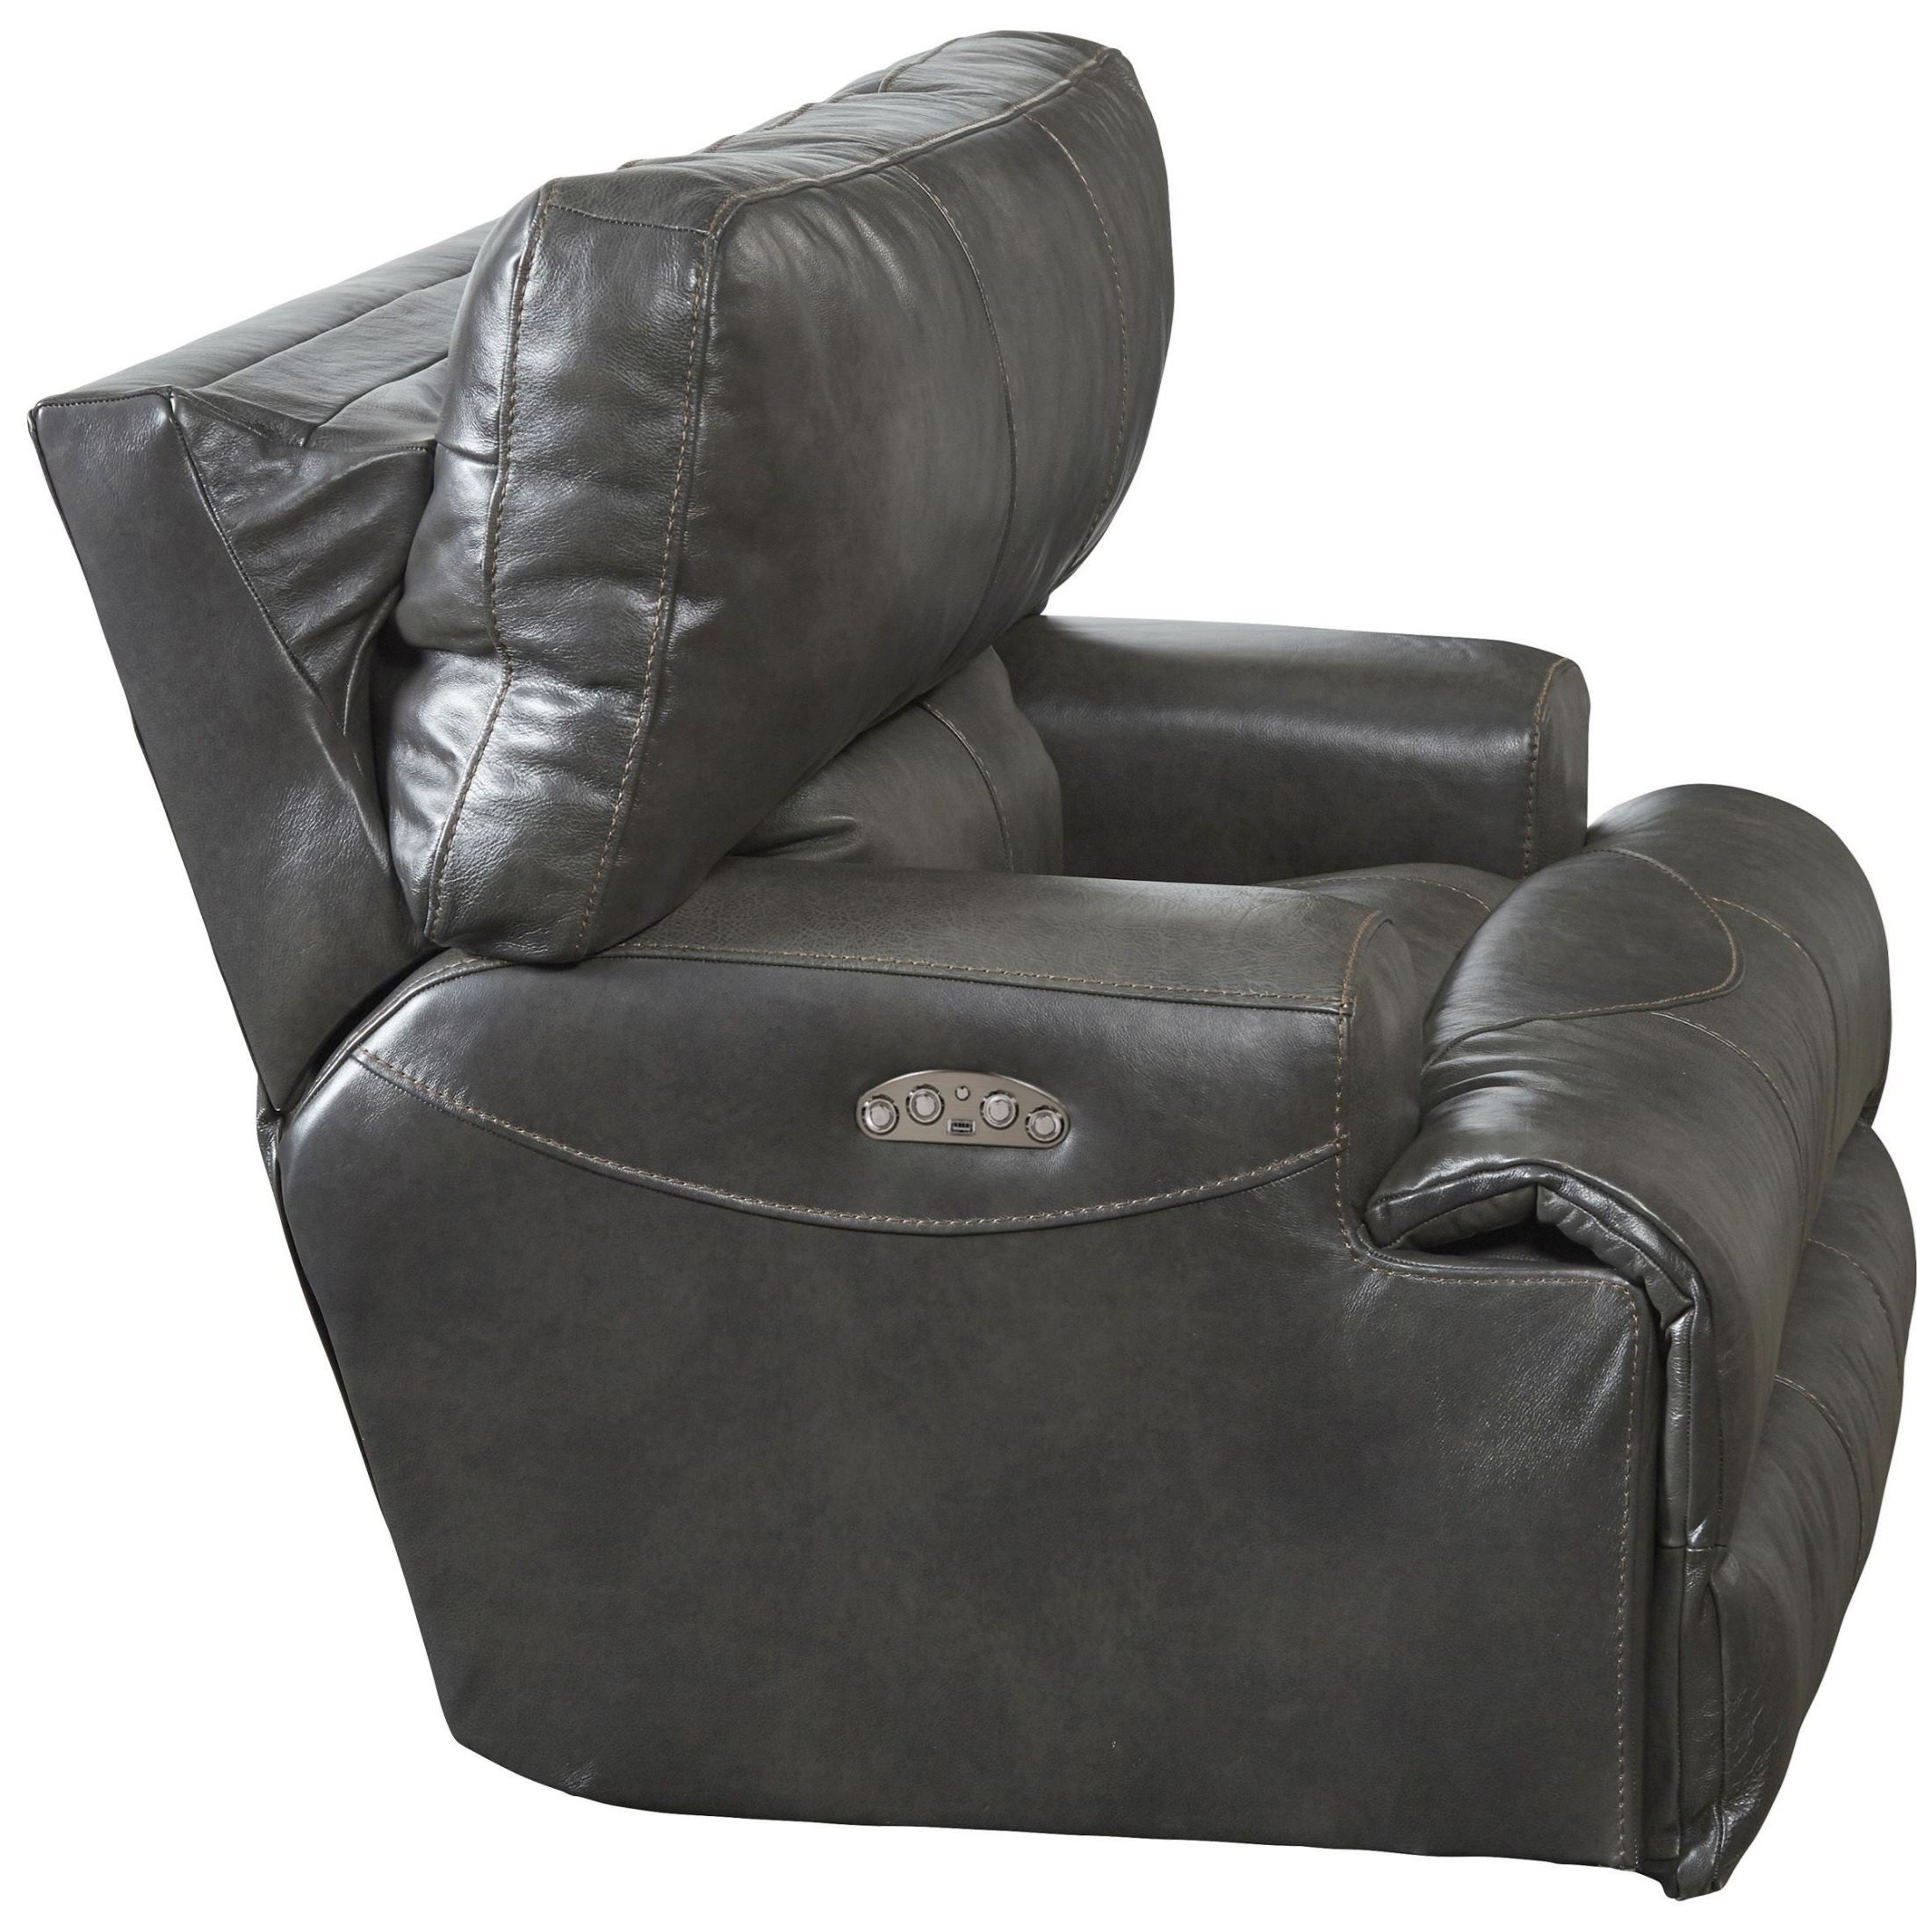 Wembley Steel Power Lay Flat Recliner 64580 7 1283 28